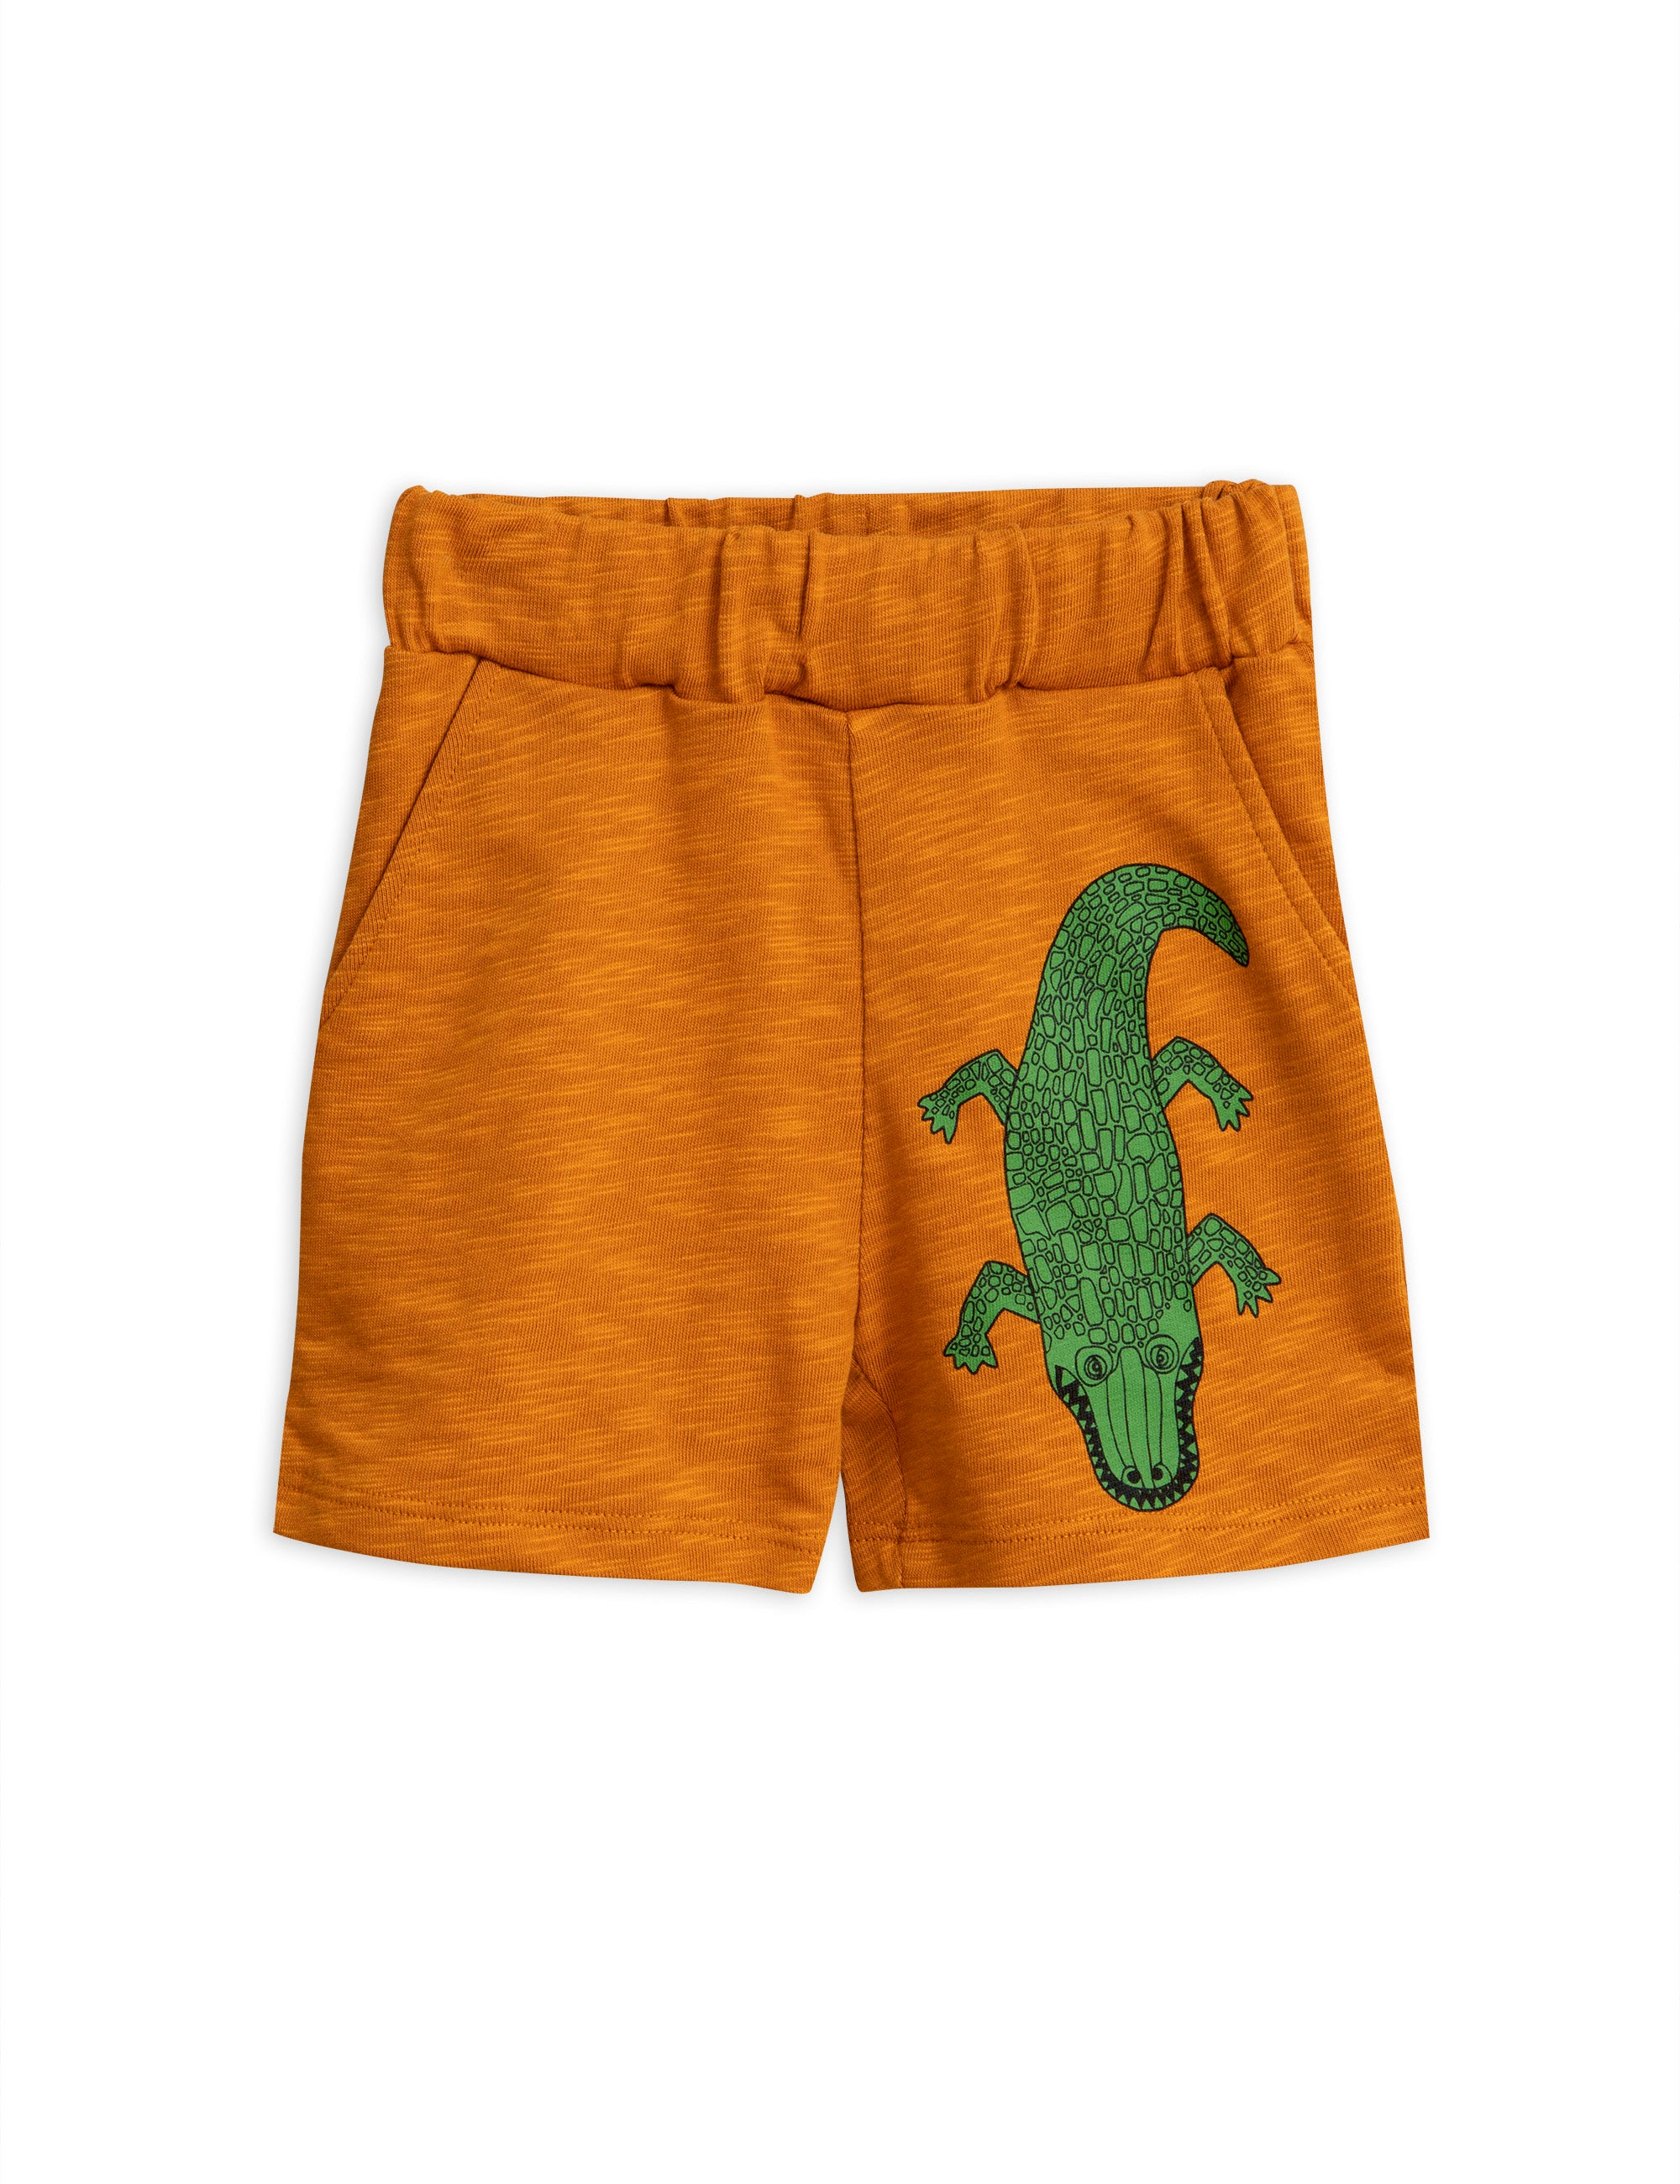 Mini Rodini Crocco Sweatshorts - Brown